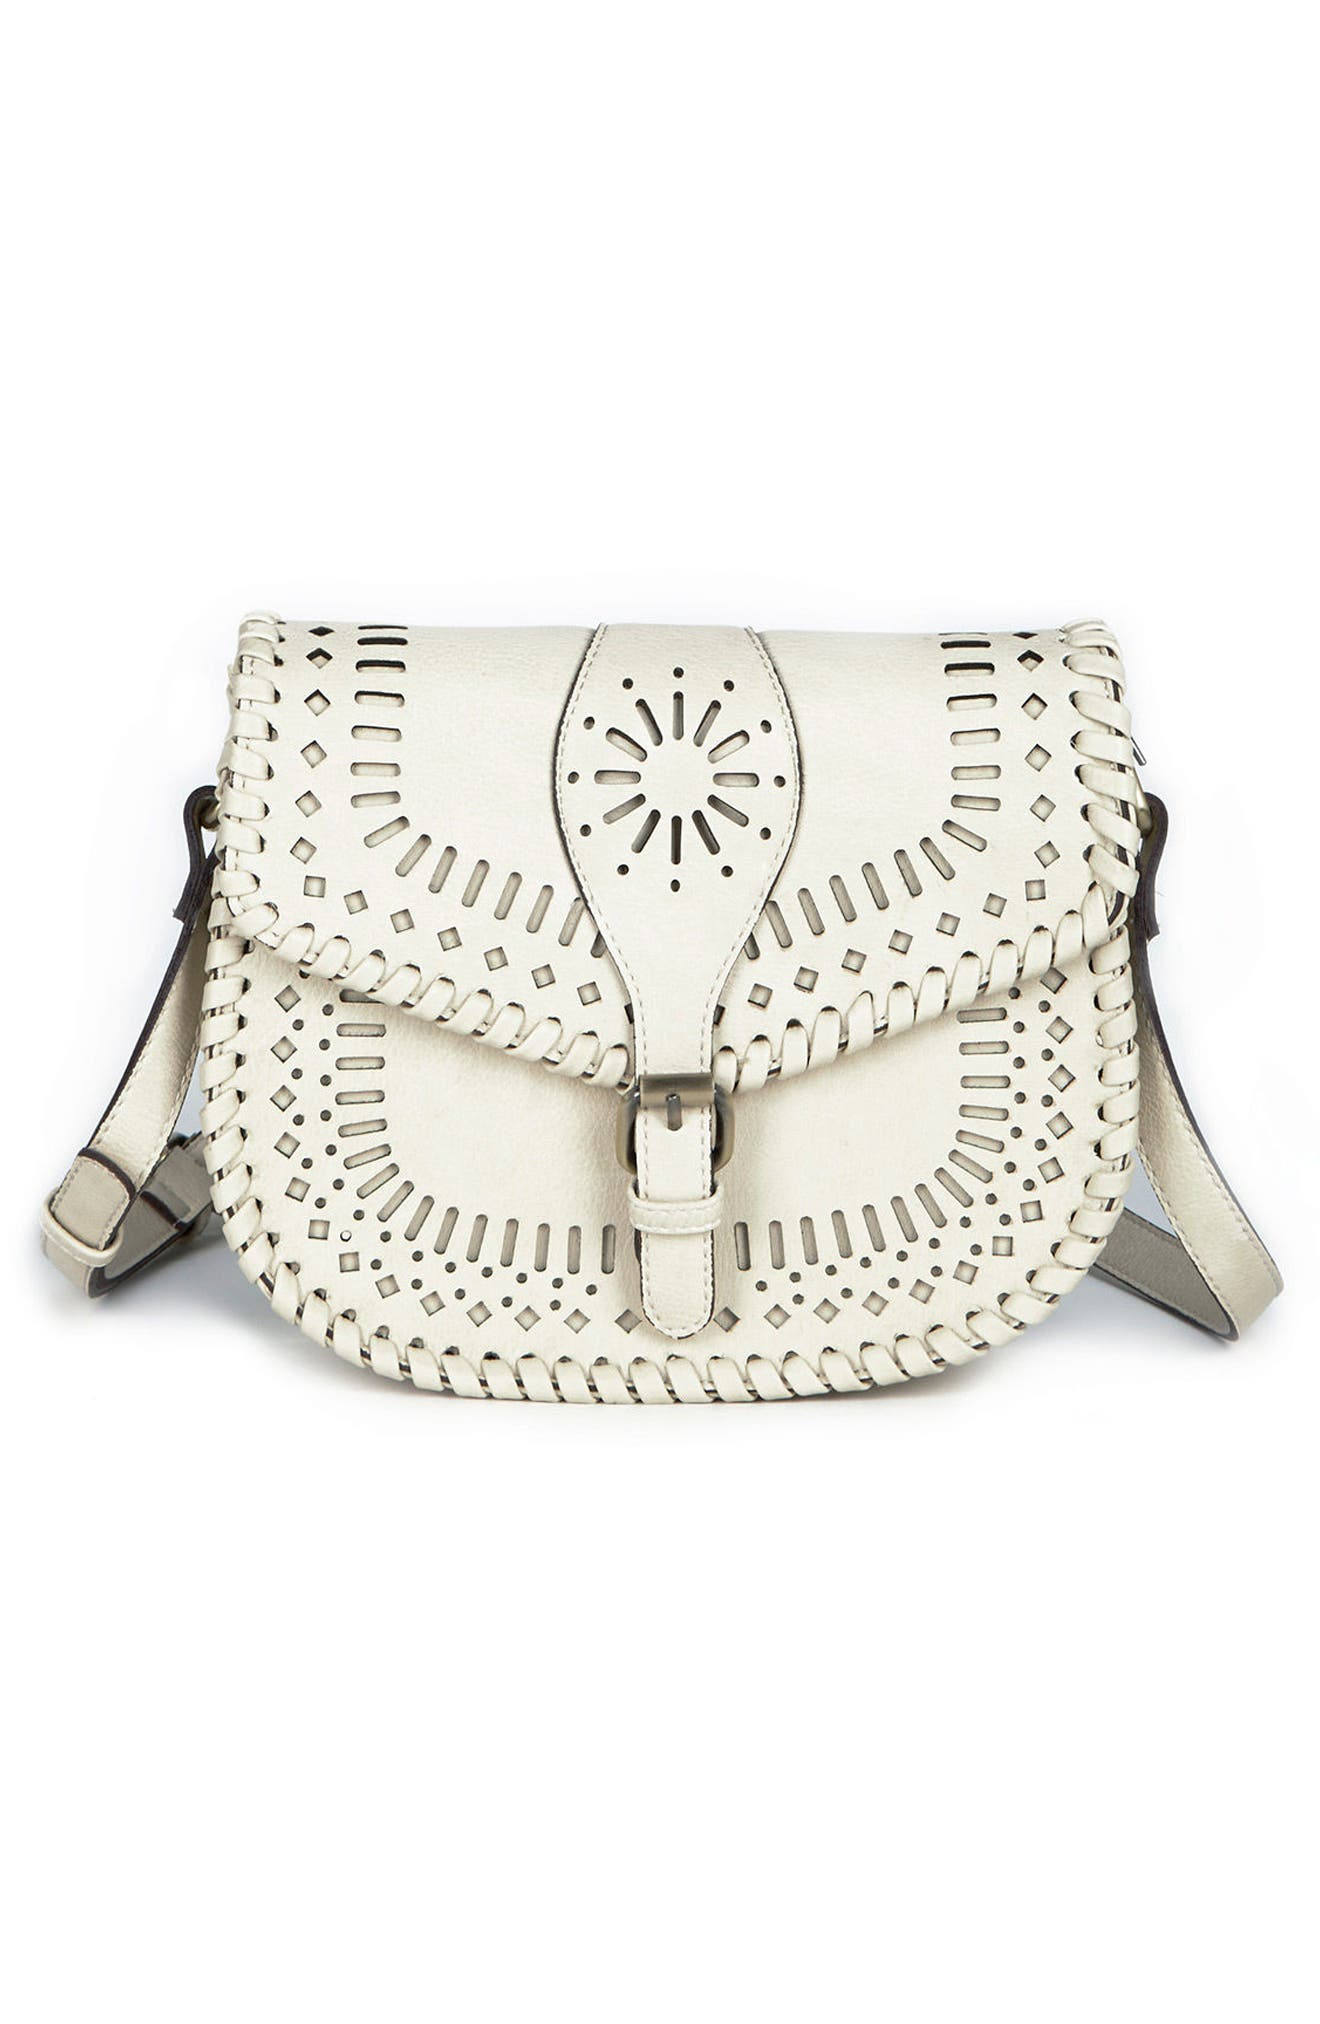 Alternate Image 1 Selected - Sole Society 'Kianna' Perforated Faux Leather Crossbody Bag